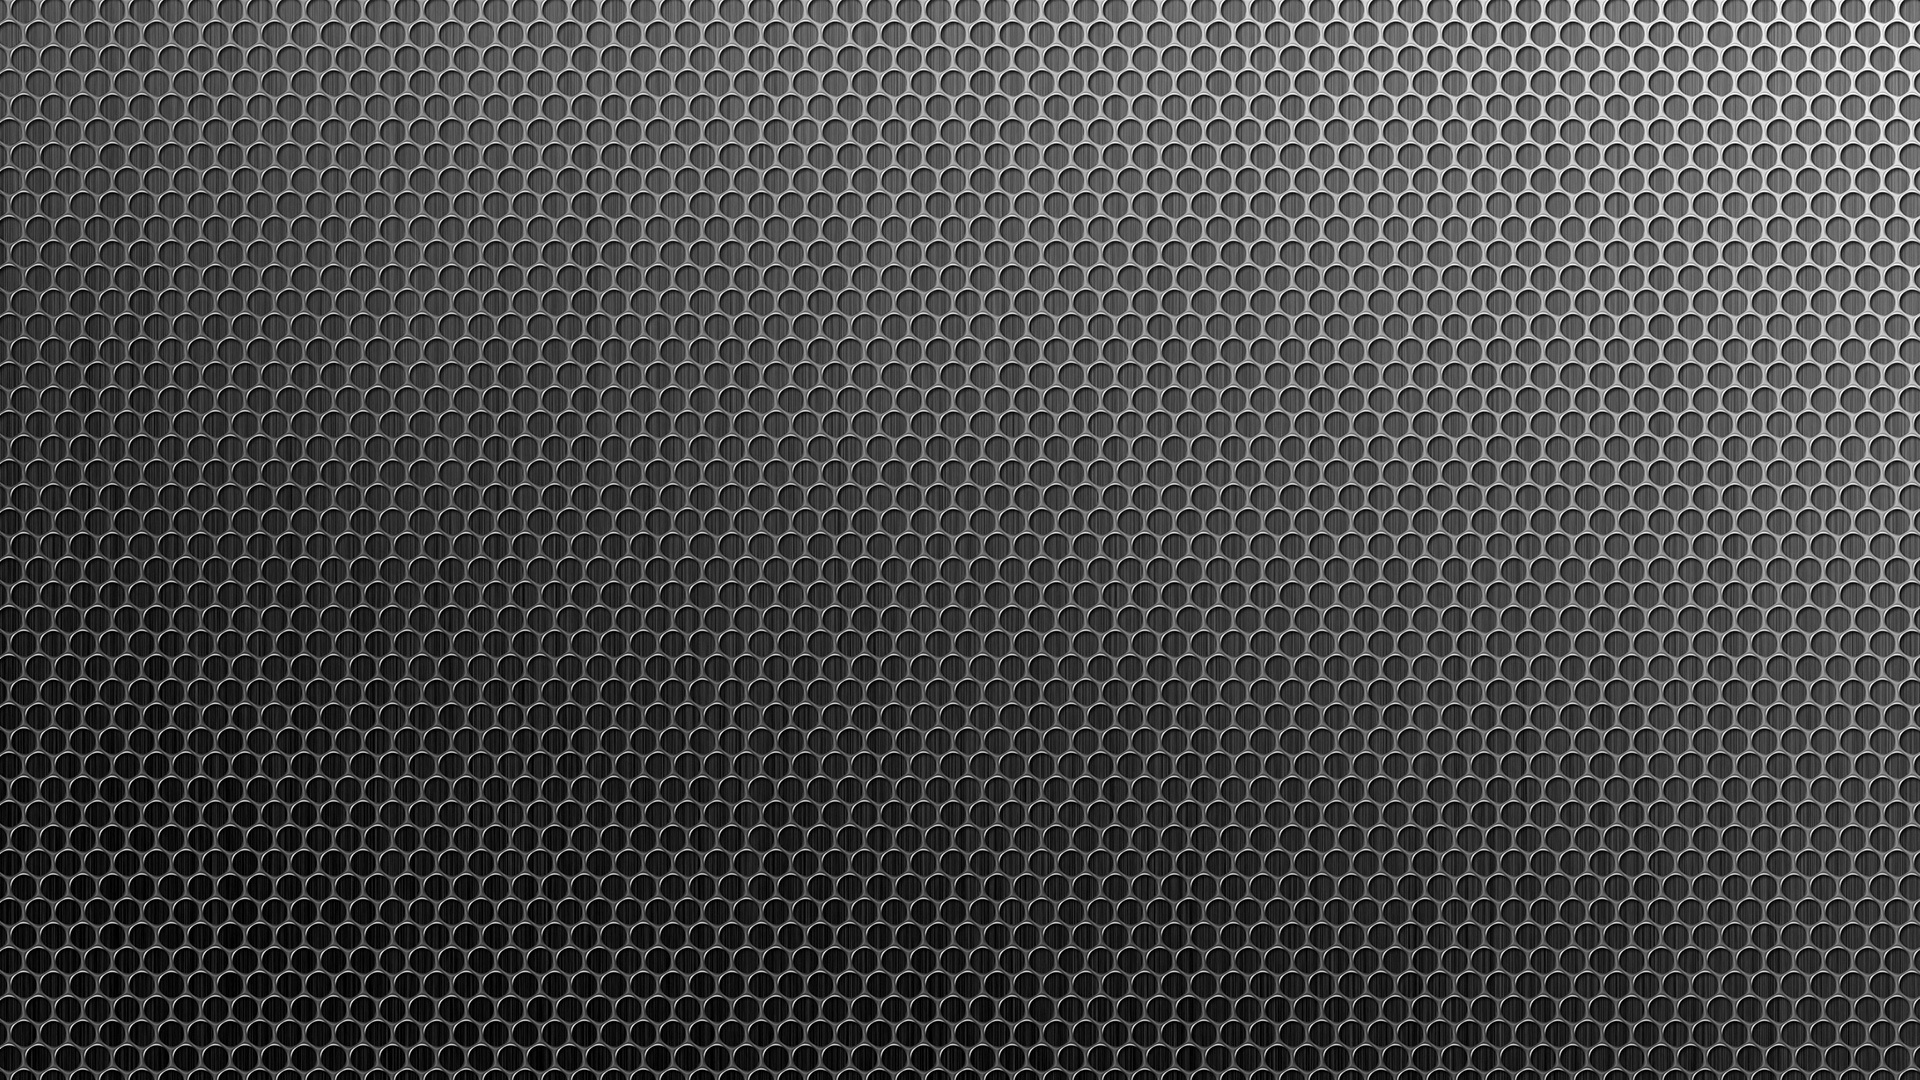 1366x768 grey honeycomb pattern - photo #8